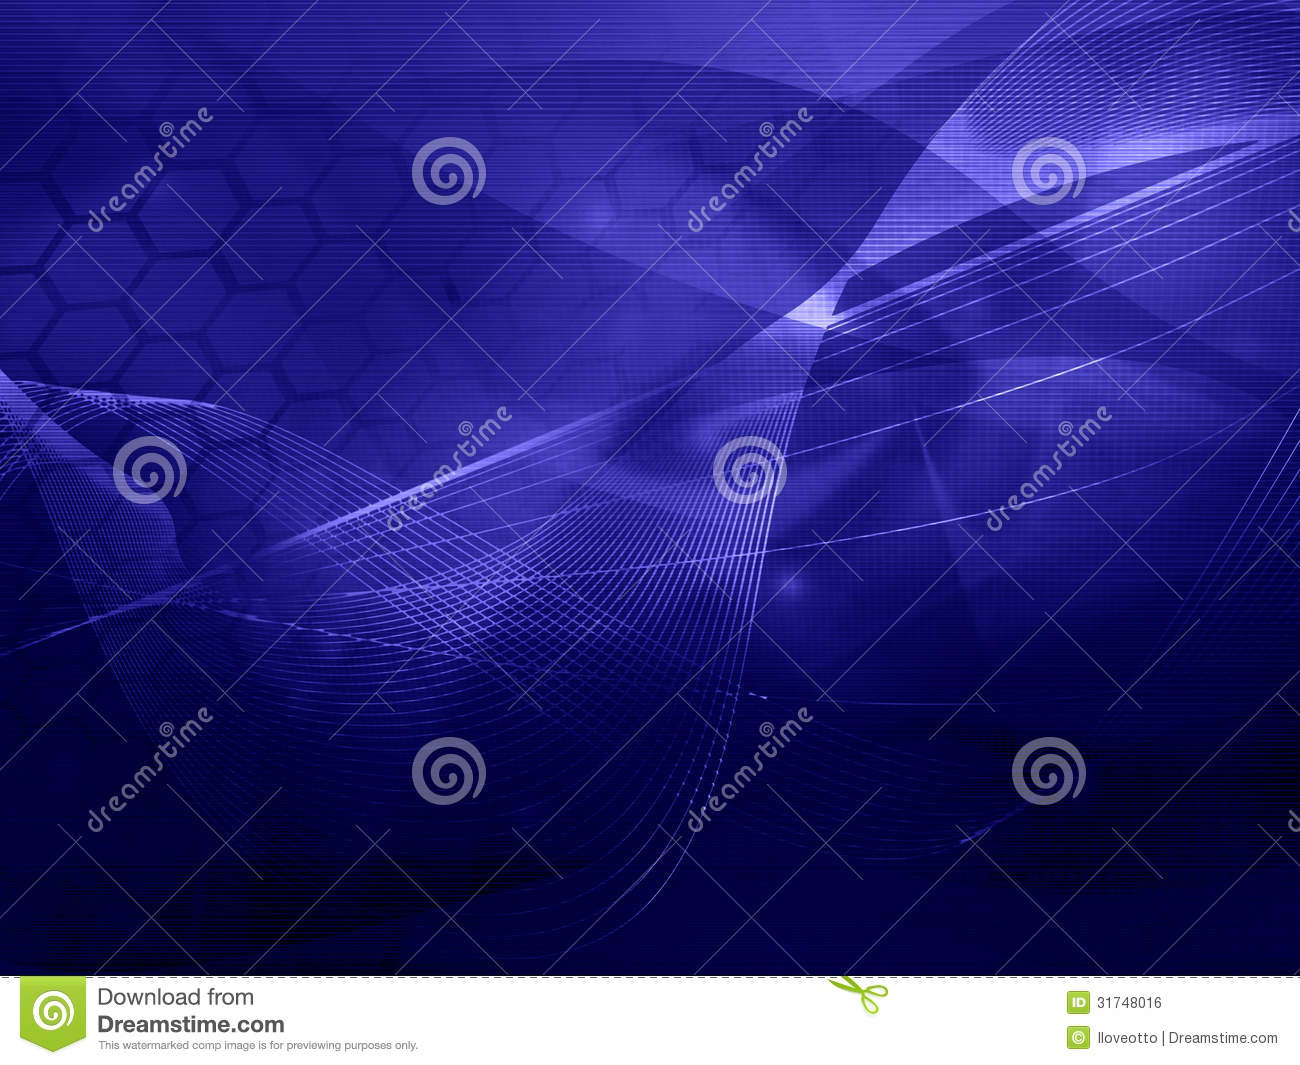 Stream Of Light Wallpaper Cool Waves Background Royalty Free Stock Image Image